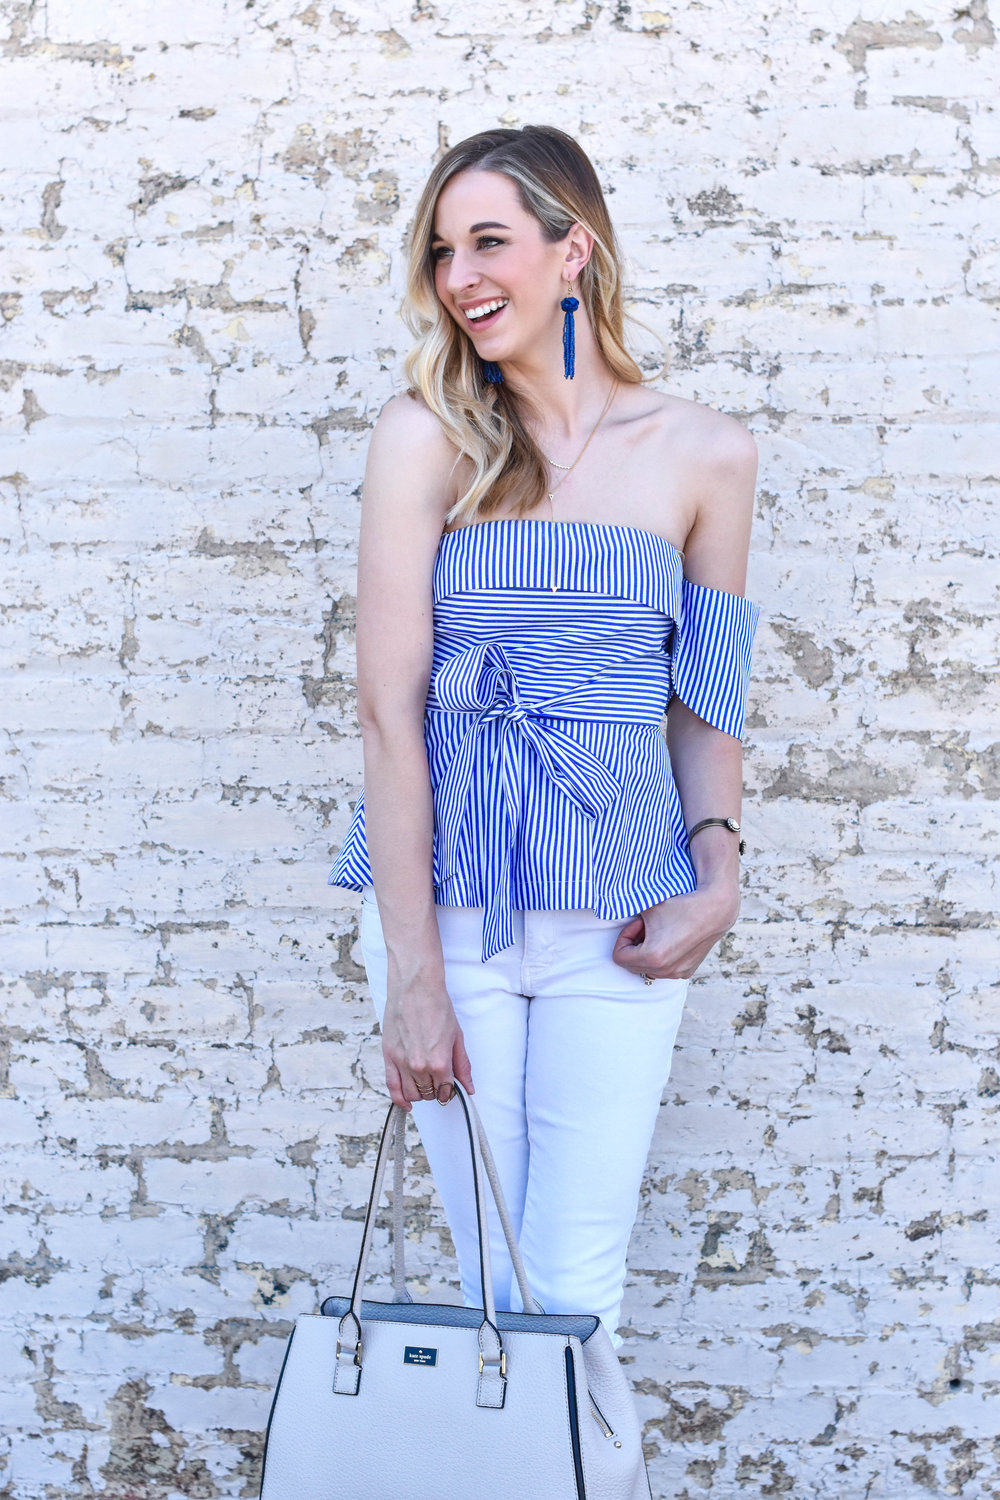 Kaily Mae: Spring into Summer Austin Fashion 5